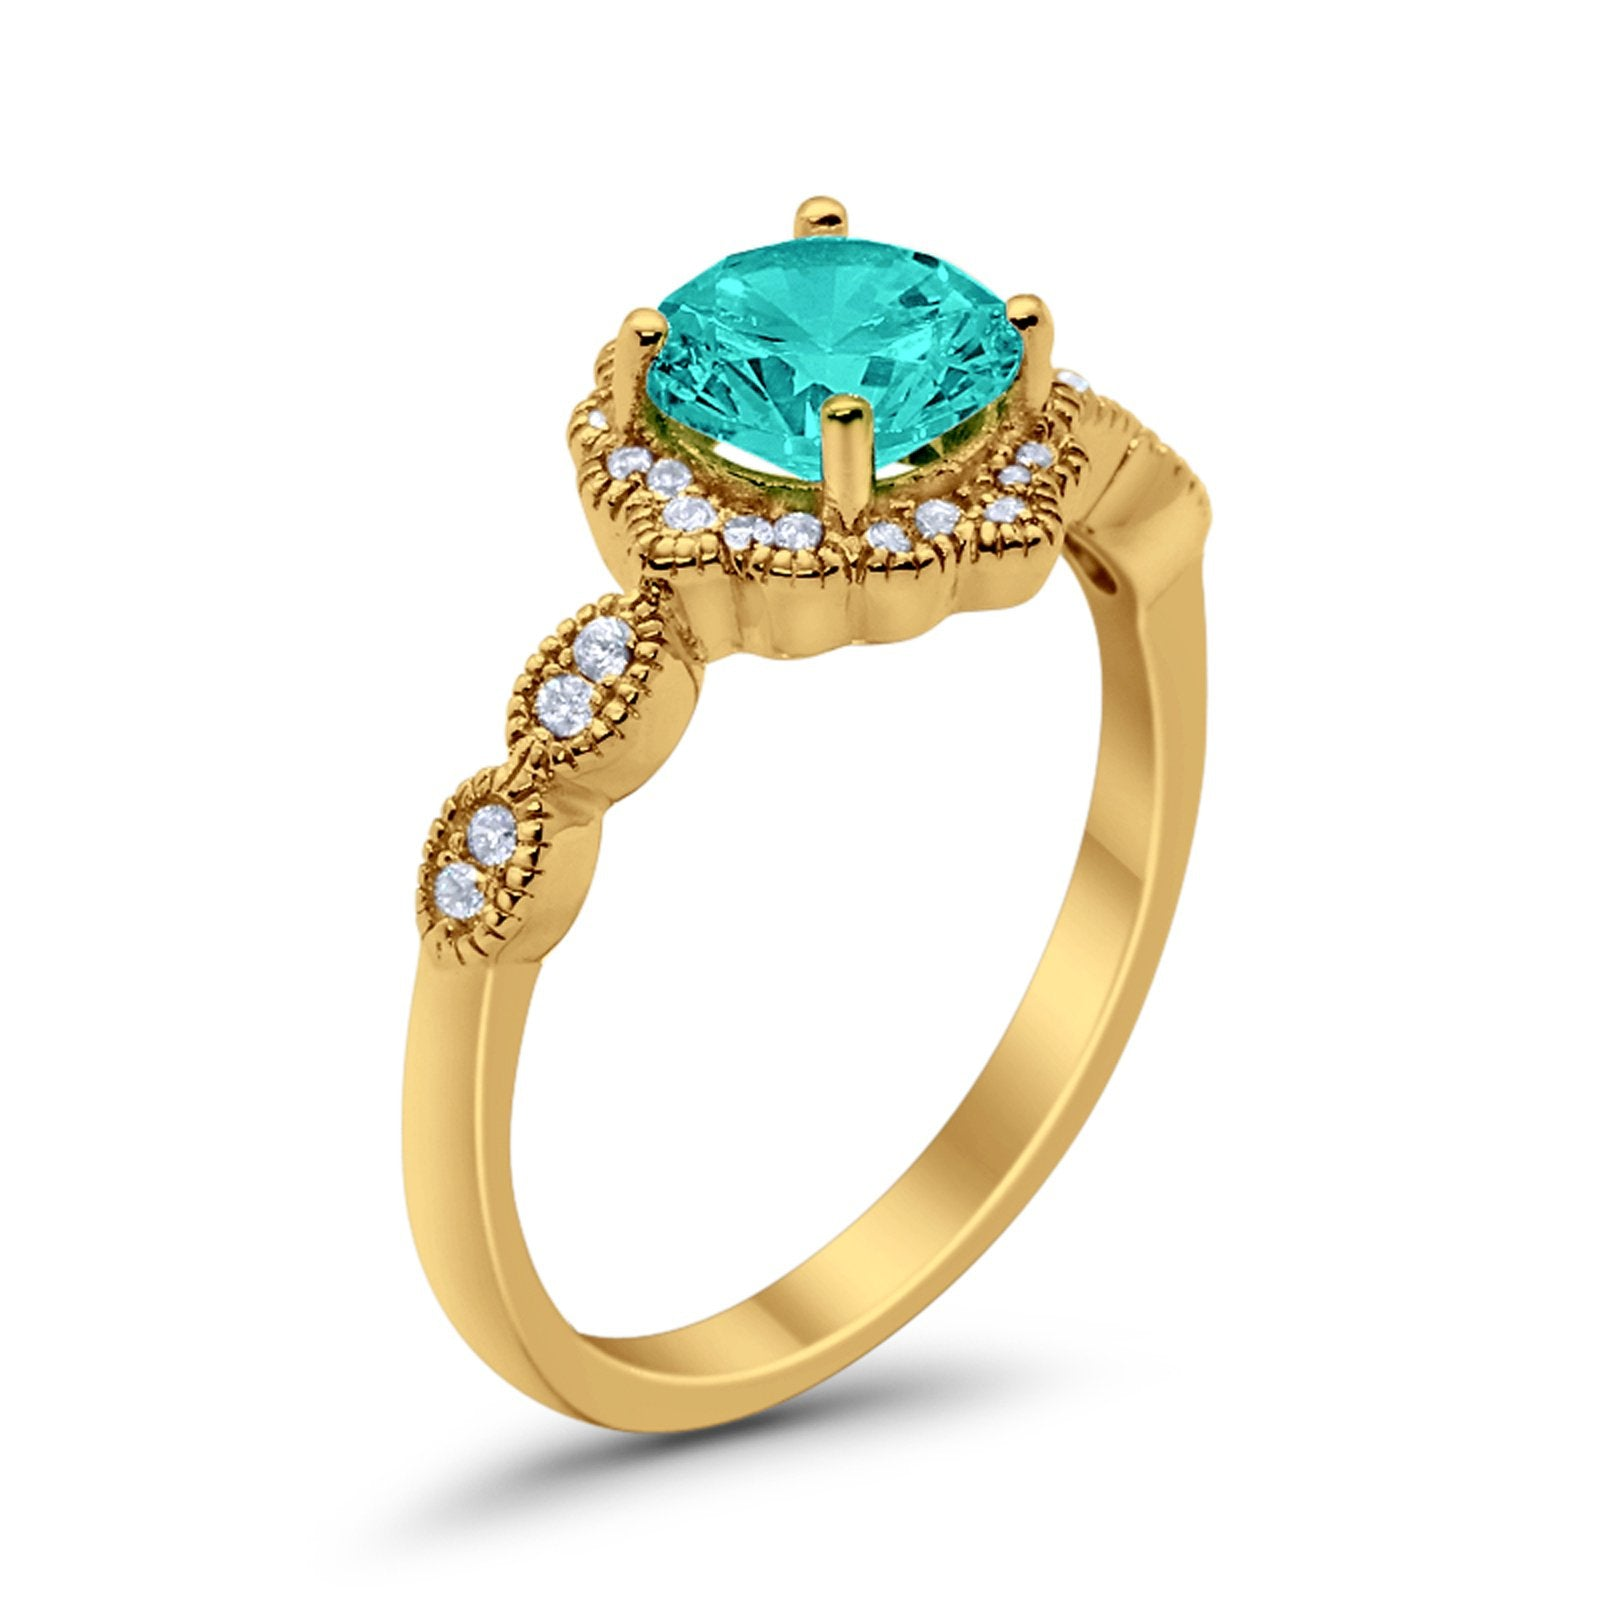 Floral Wedding Ring Round Yellow Tone, Simulated Paraiba Tourmaline CZ 925 Sterling Silver